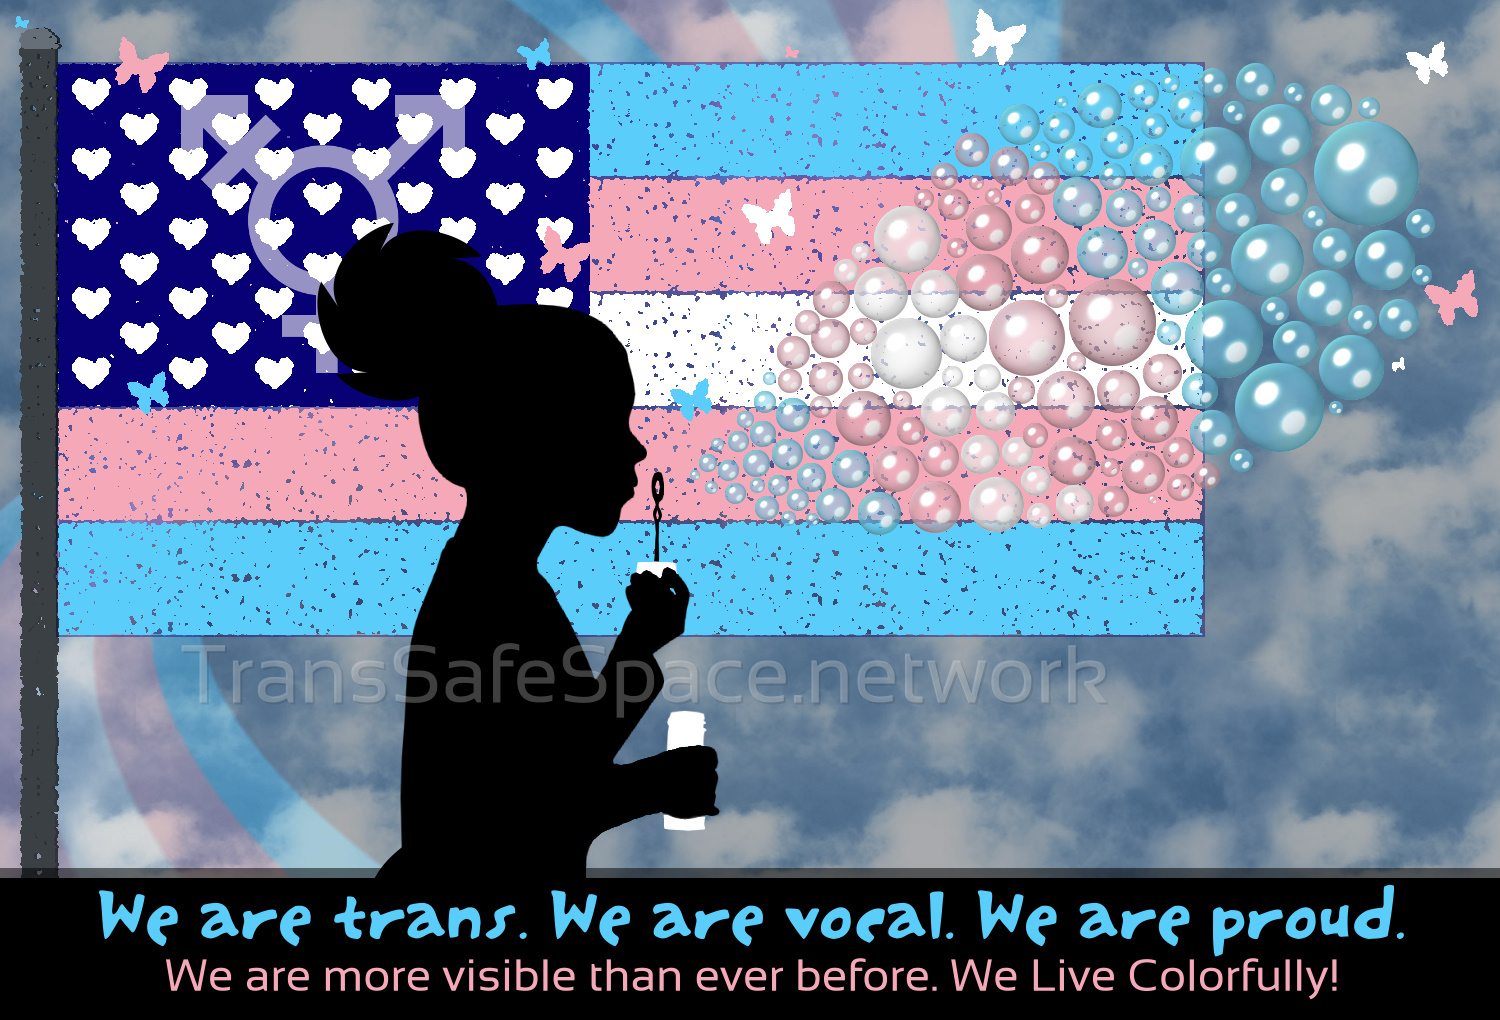 America Trans Flag Girl Blowing Bubbles meme